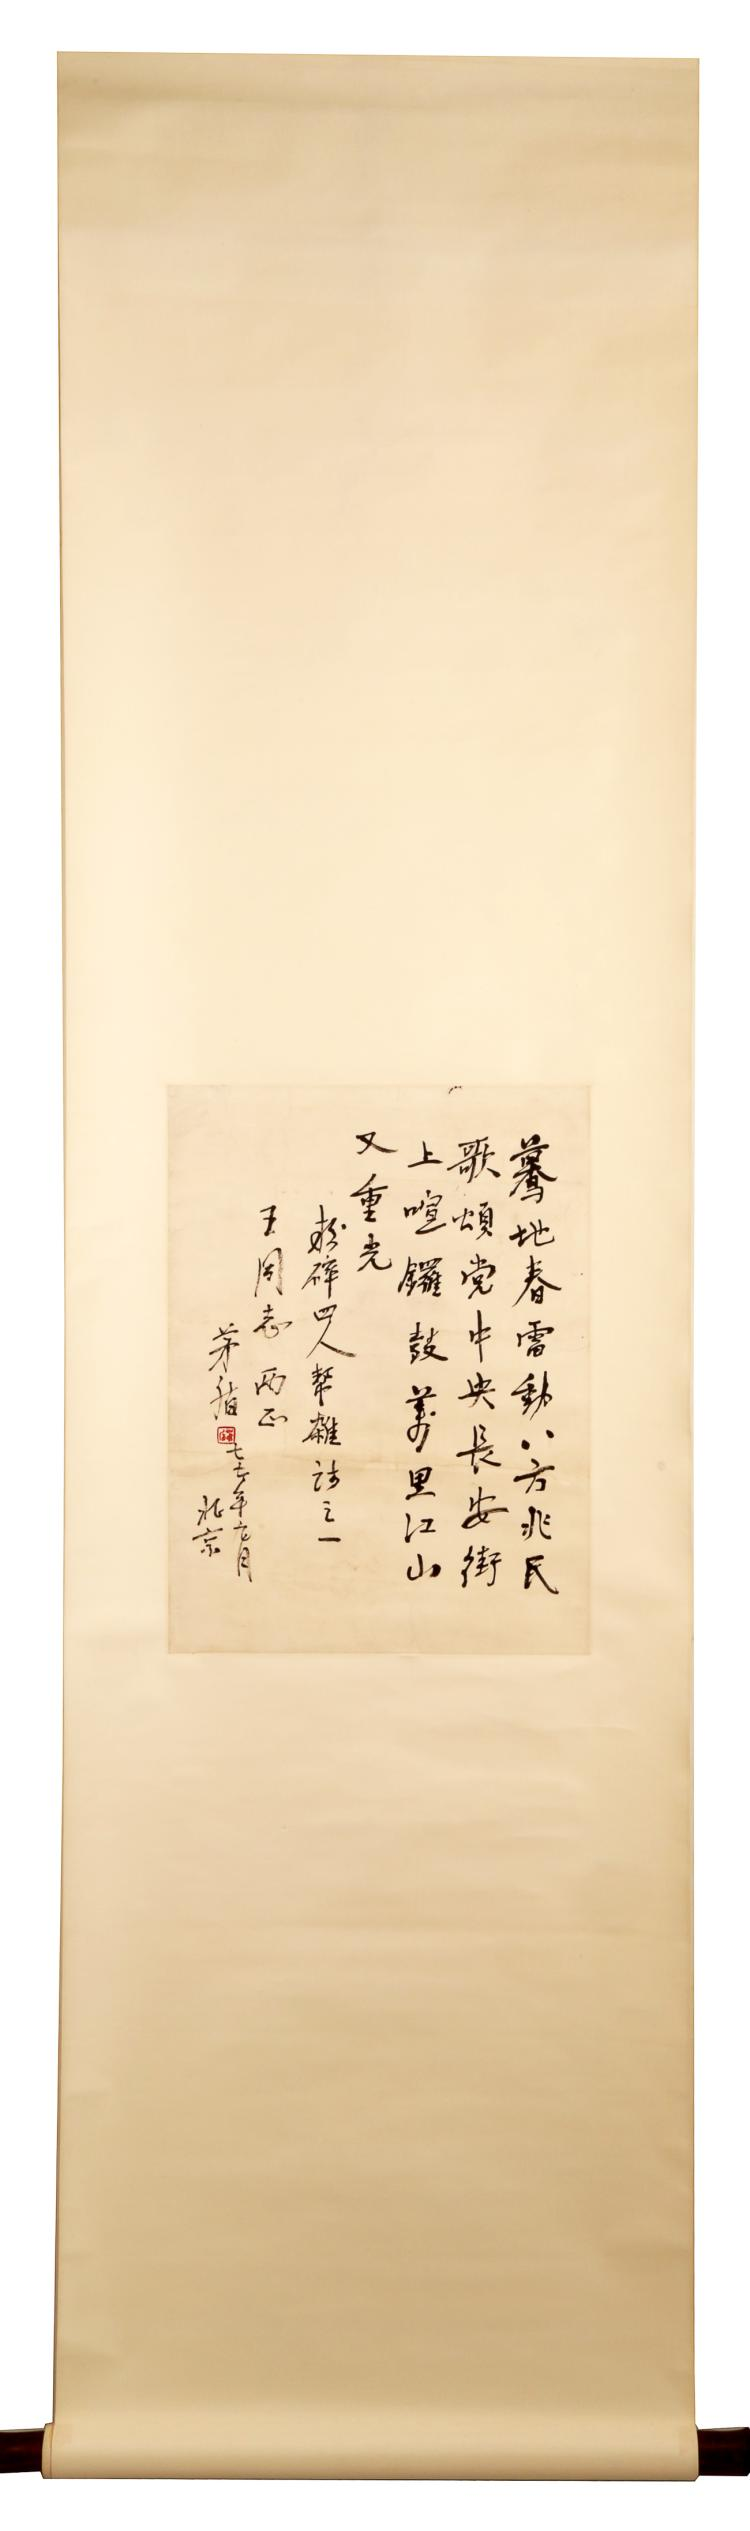 SIGNED MAO DUN (1896 - 1981) IN 1977. CHINESE INK ON PAPER CALLIGRAPHY HANGING SCROLL, WITH TWO A COLOR SEAL OF ARTIST.